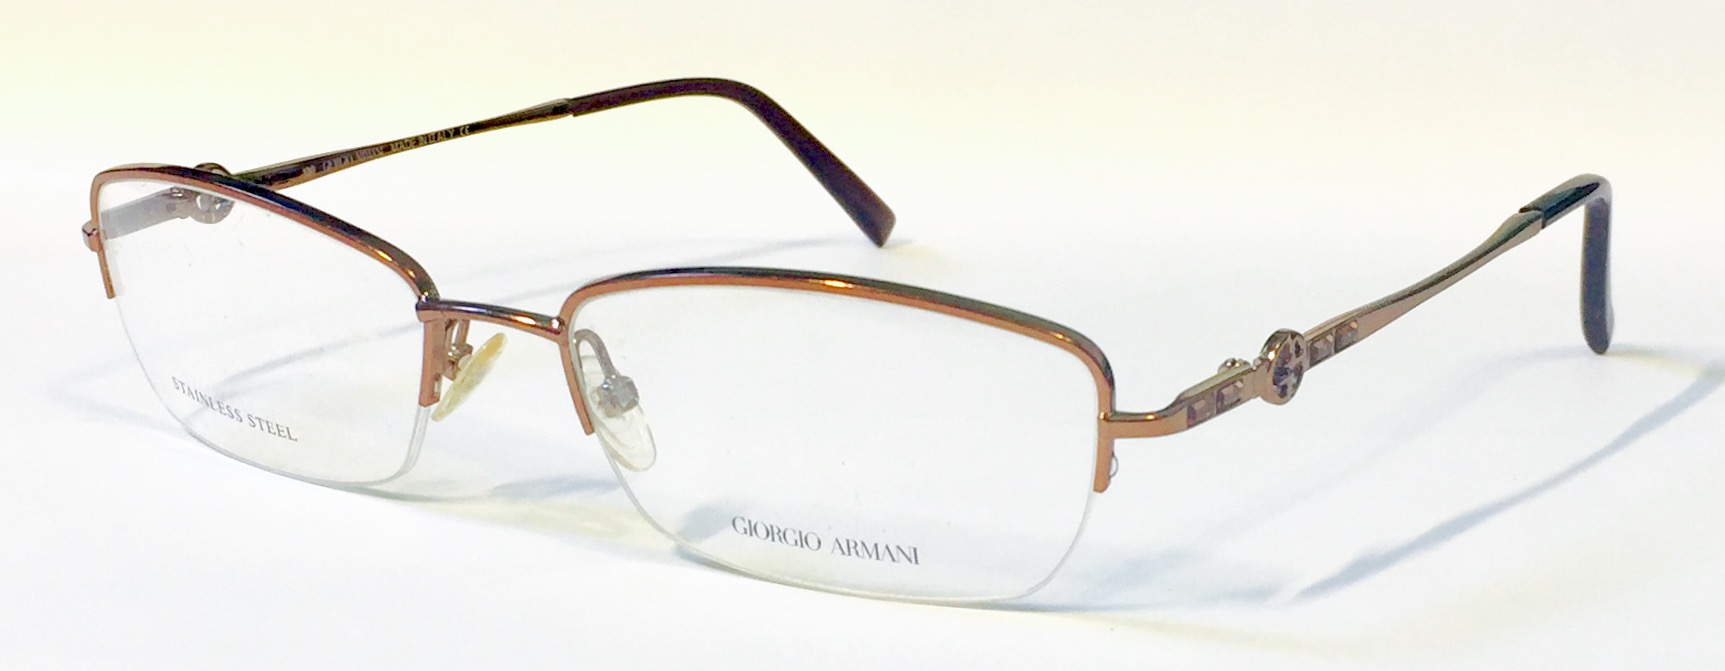 CLEARANCE GIORGIO ARMANI 342 (DISPLAY MODEL)